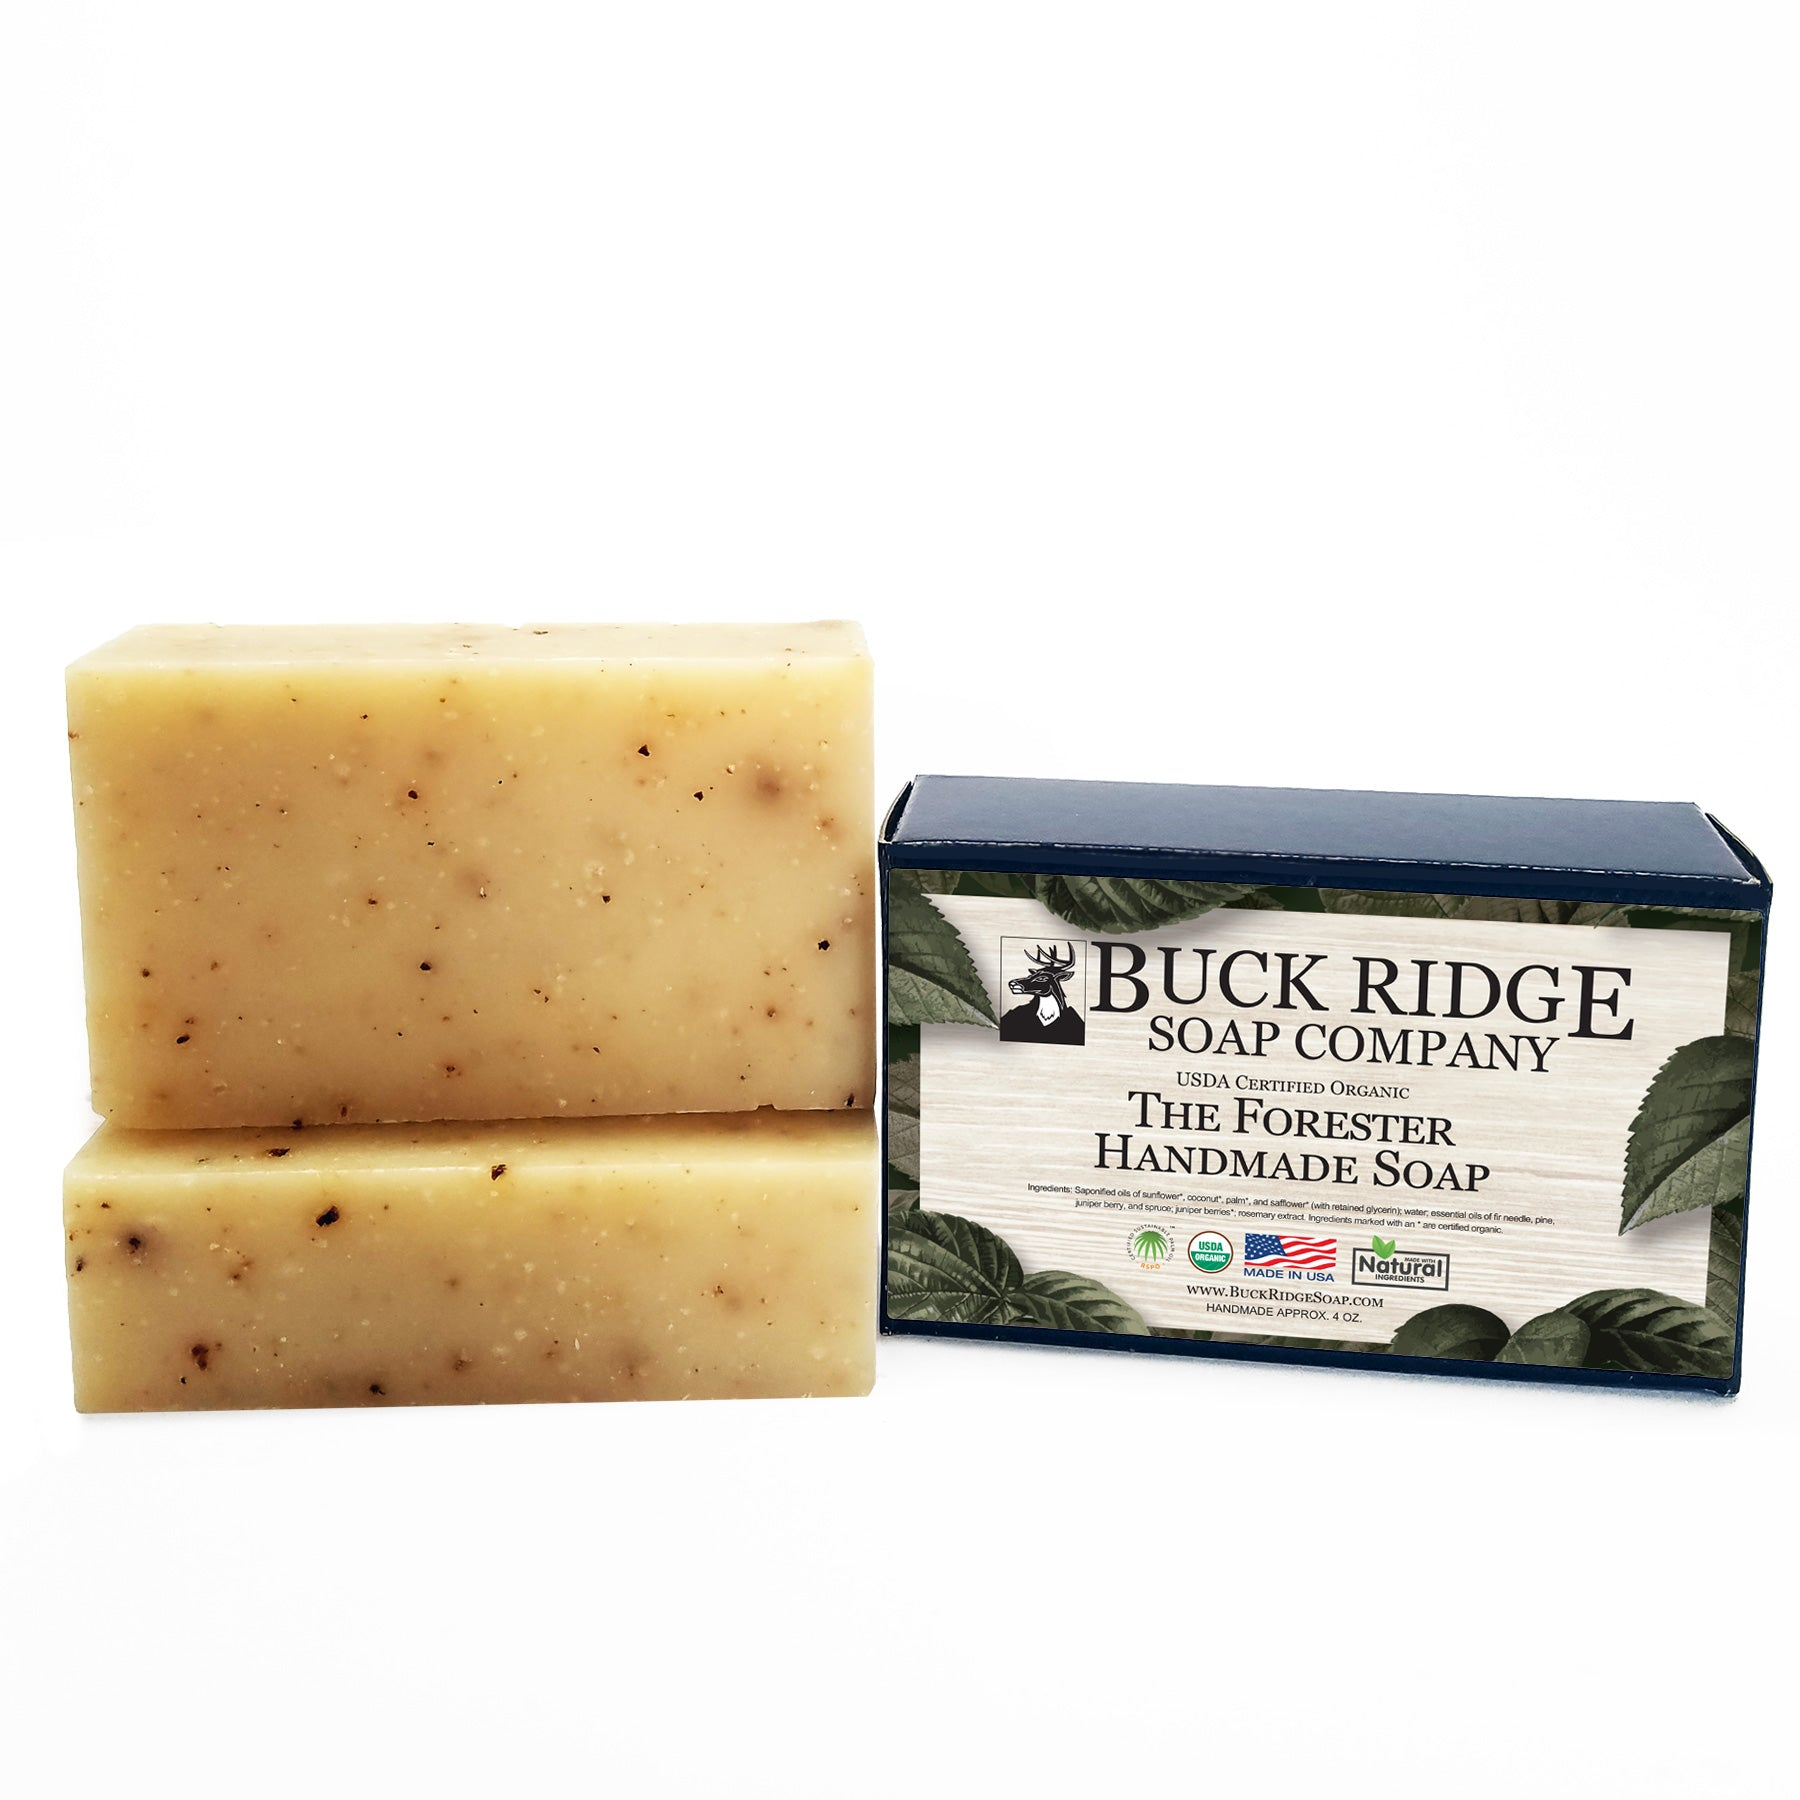 The Forester Men's Handmade Soap